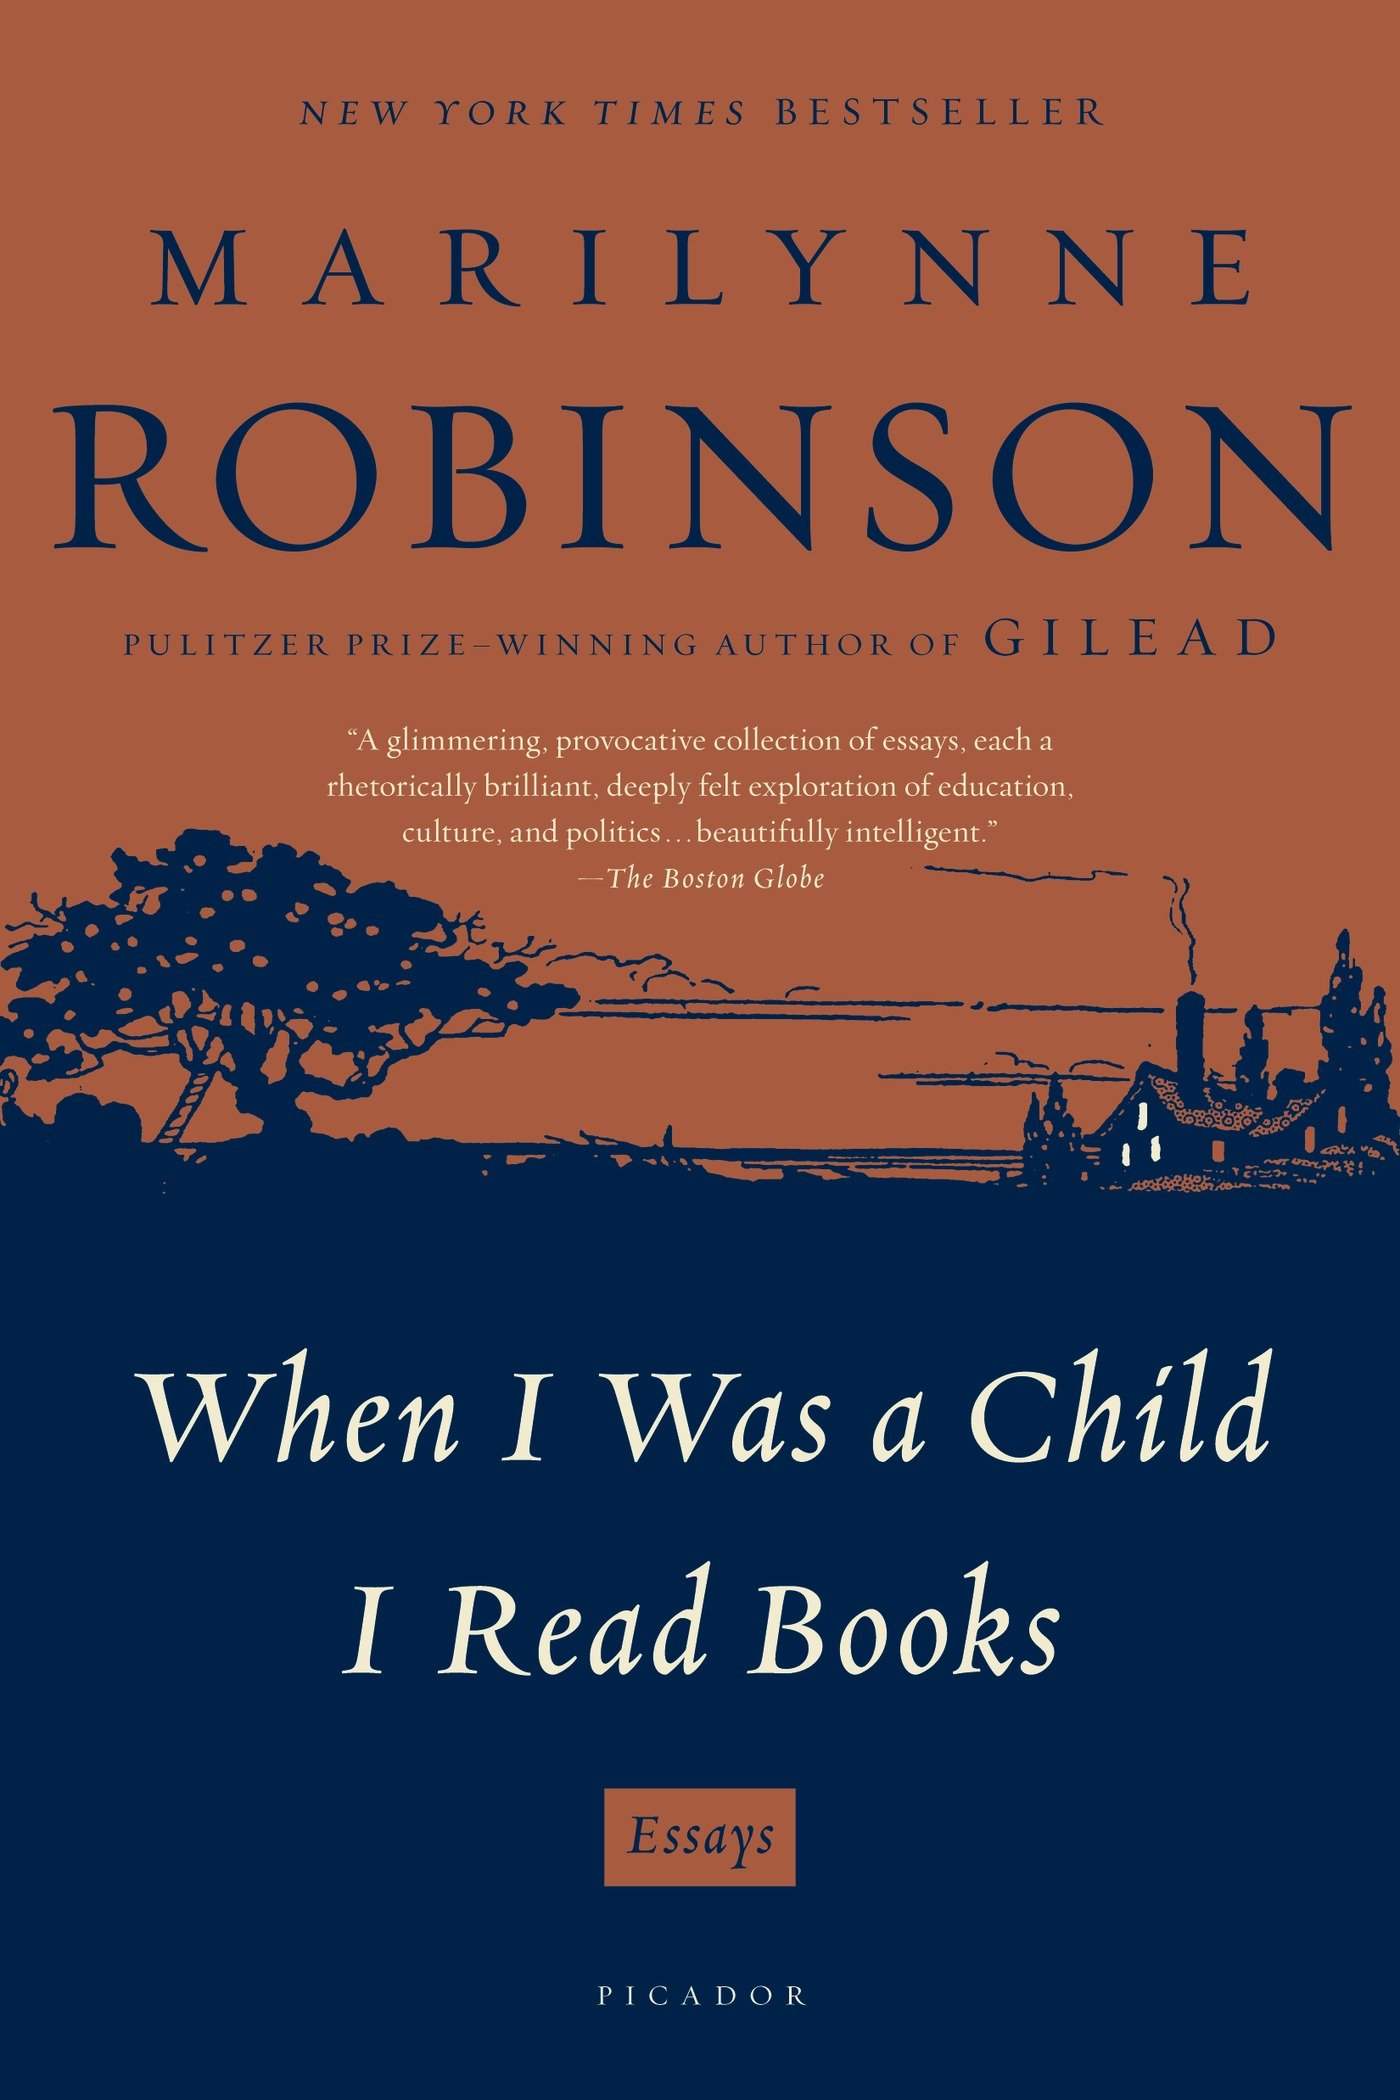 when i was a child i books essays marilynne robinson when i was a child i books essays marilynne robinson 9781250024053 com books